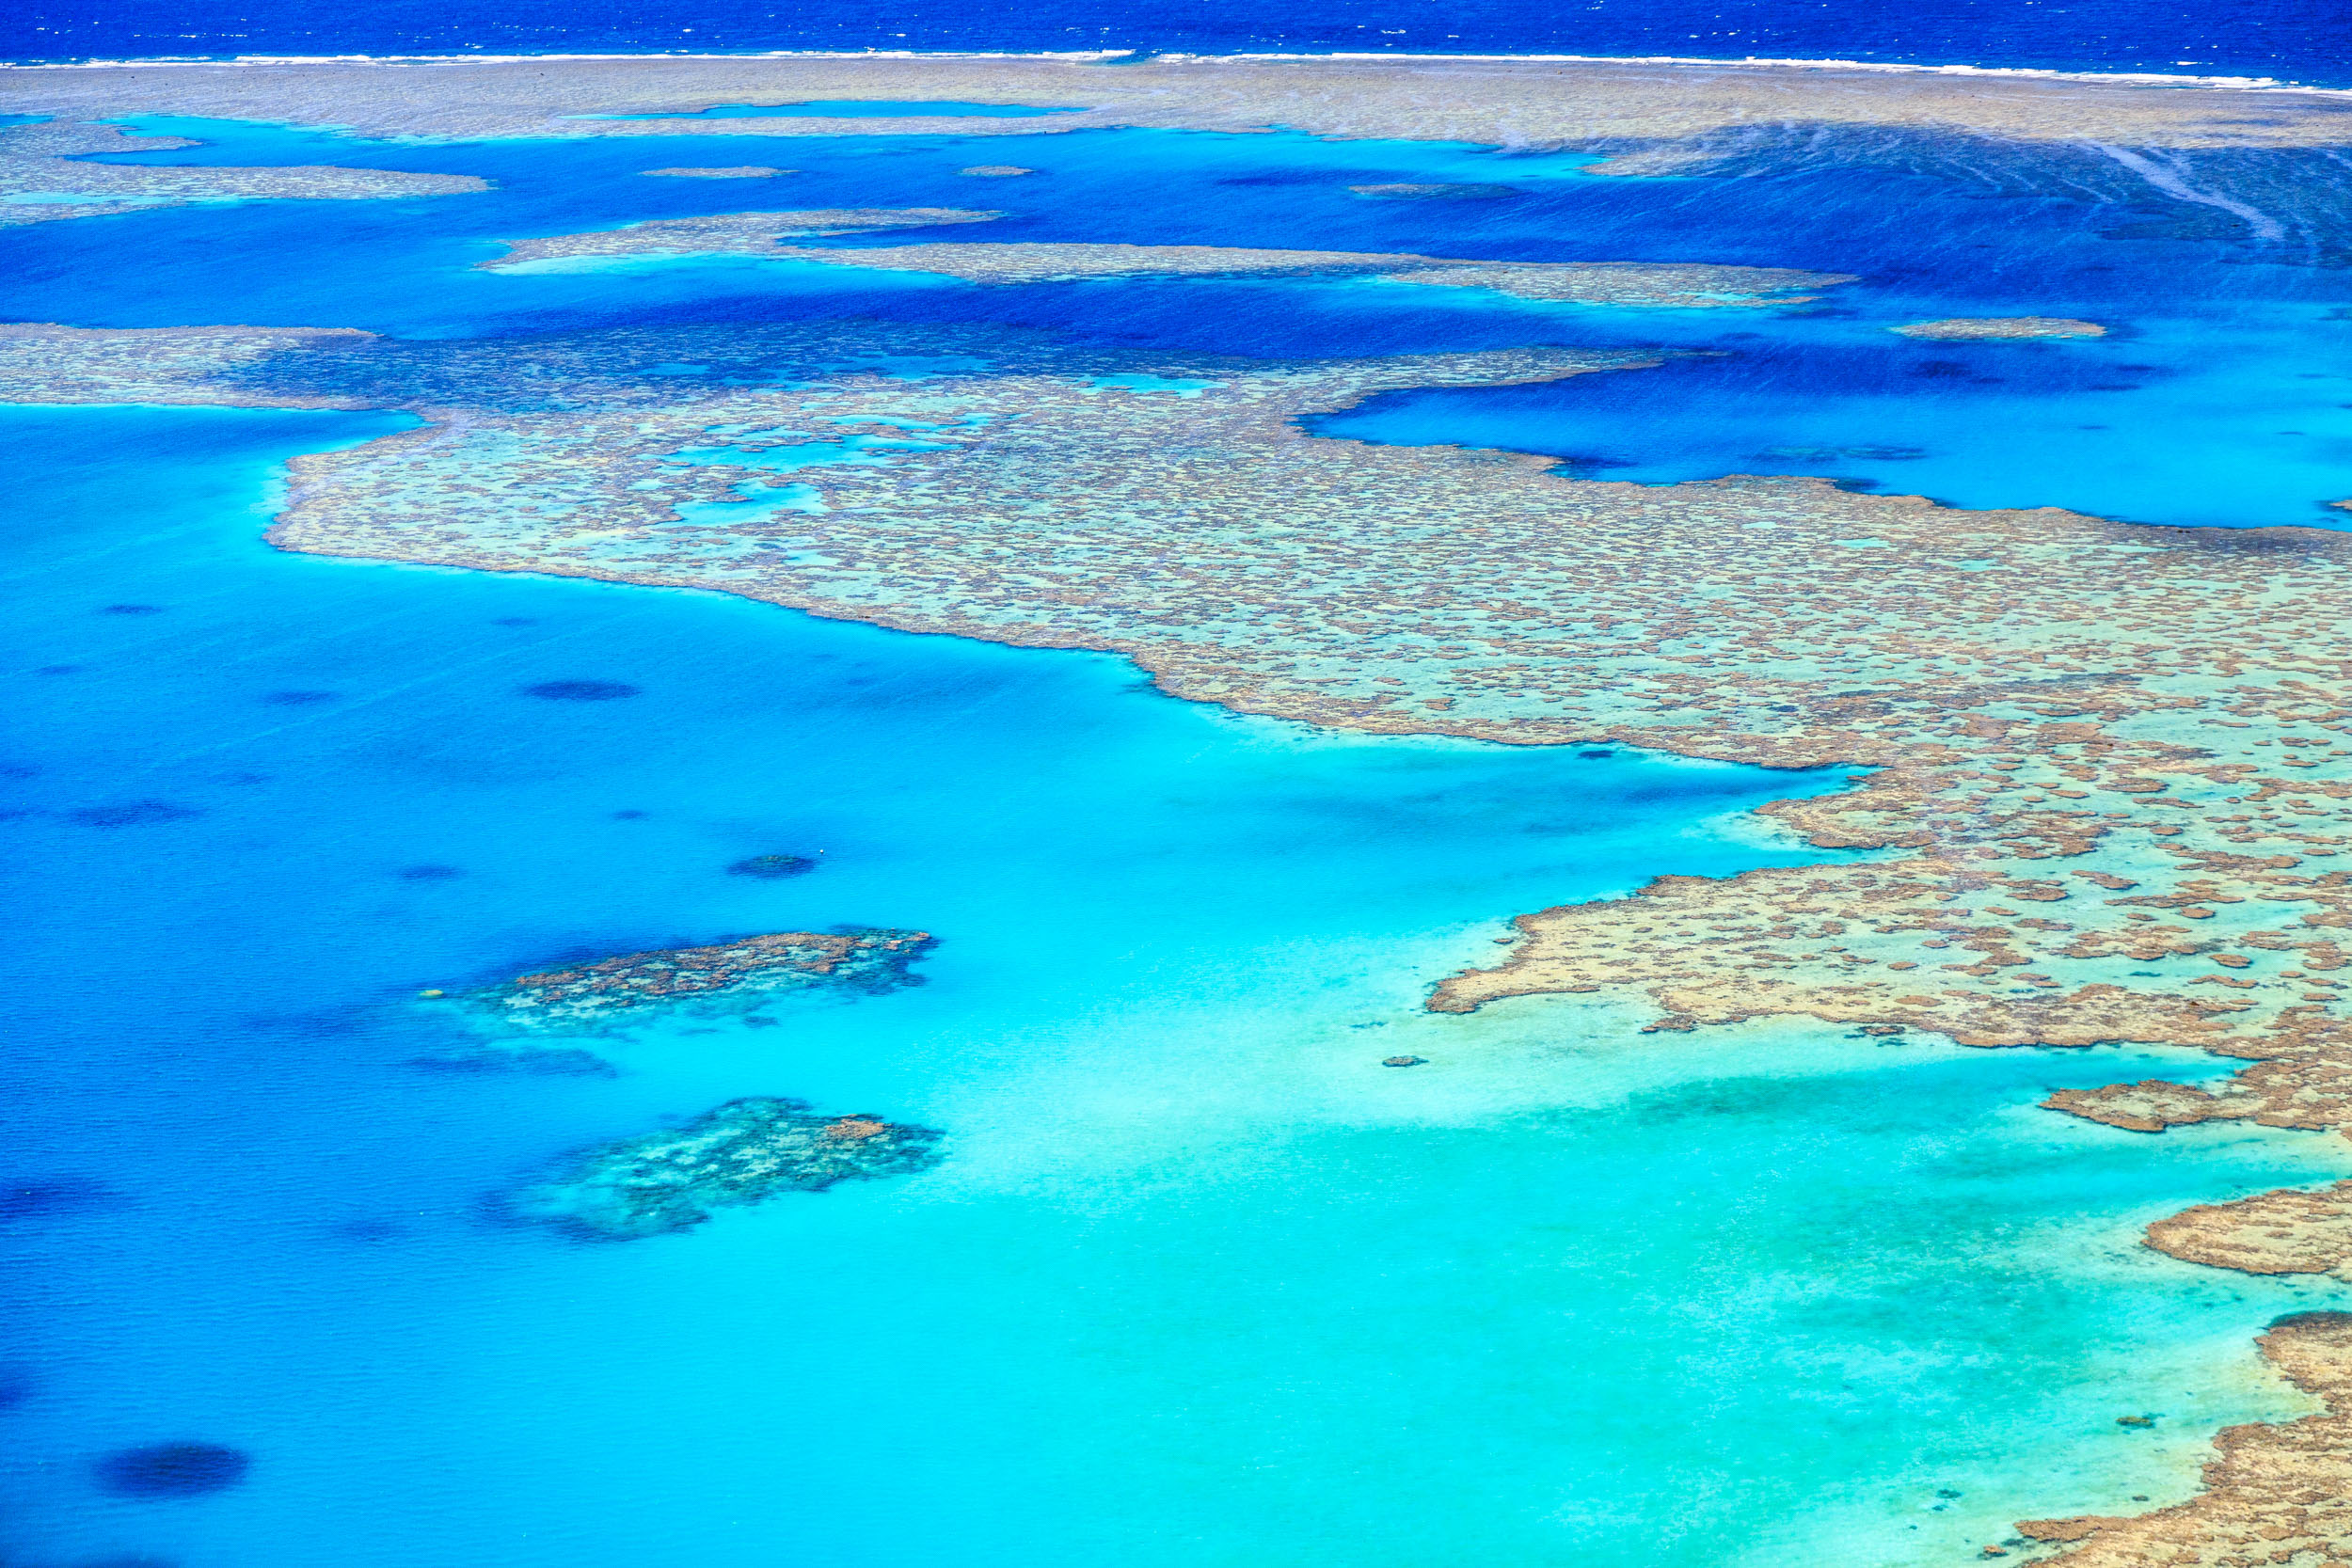 You have to see it to believe it, the beautiful Great Barrier Reef.